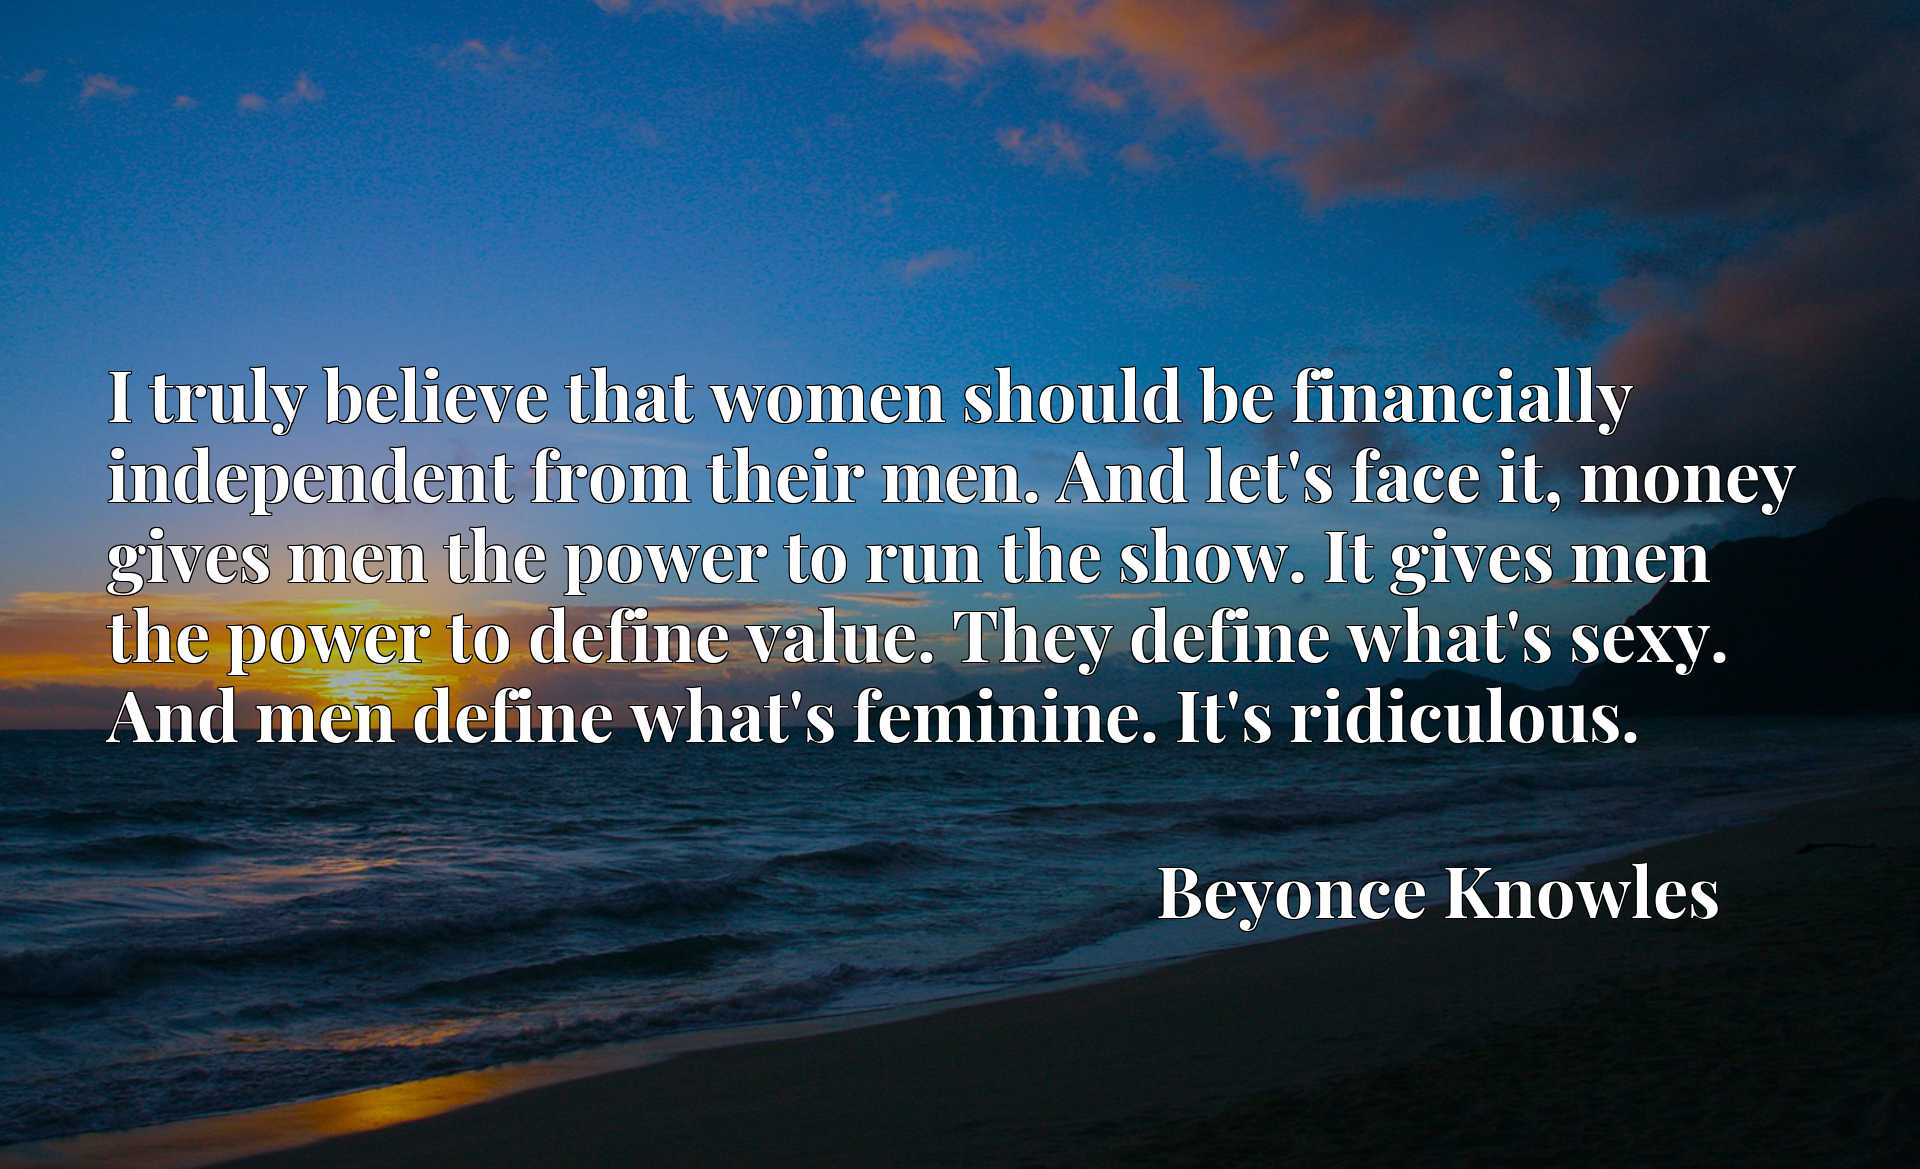 I truly believe that women should be financially independent from their men. And let's face it, money gives men the power to run the show. It gives men the power to define value. They define what's sexy. And men define what's feminine. It's ridiculous.